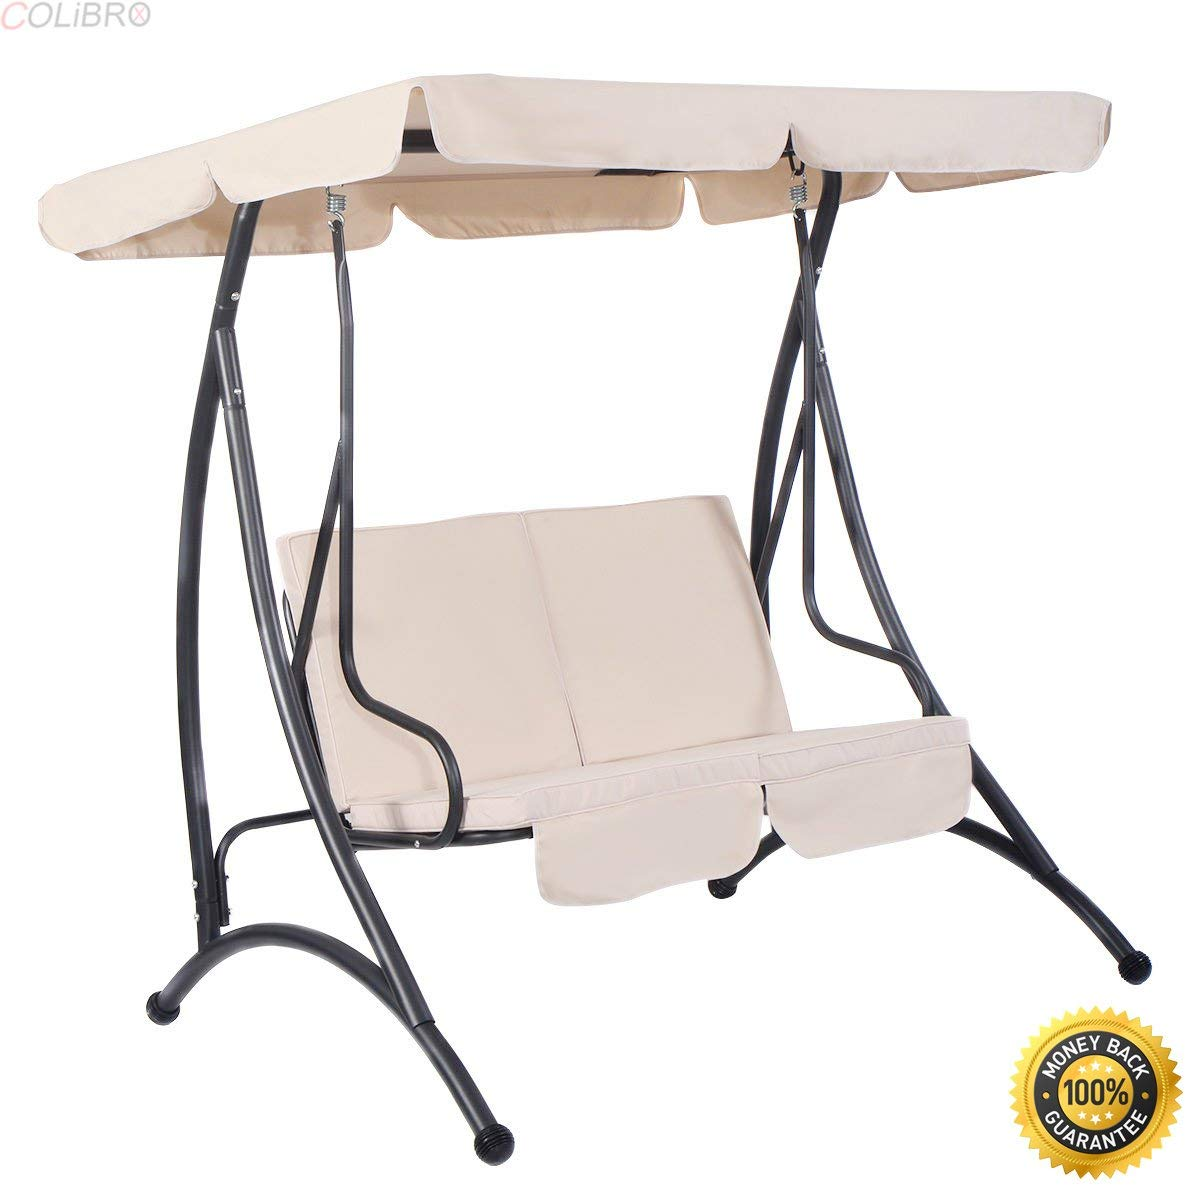 Beau Get Quotations · COLIBROX  Beige 2 Person Canopy Swing Chair Patio Hammock  Seat Cushioned Furniture Steel,